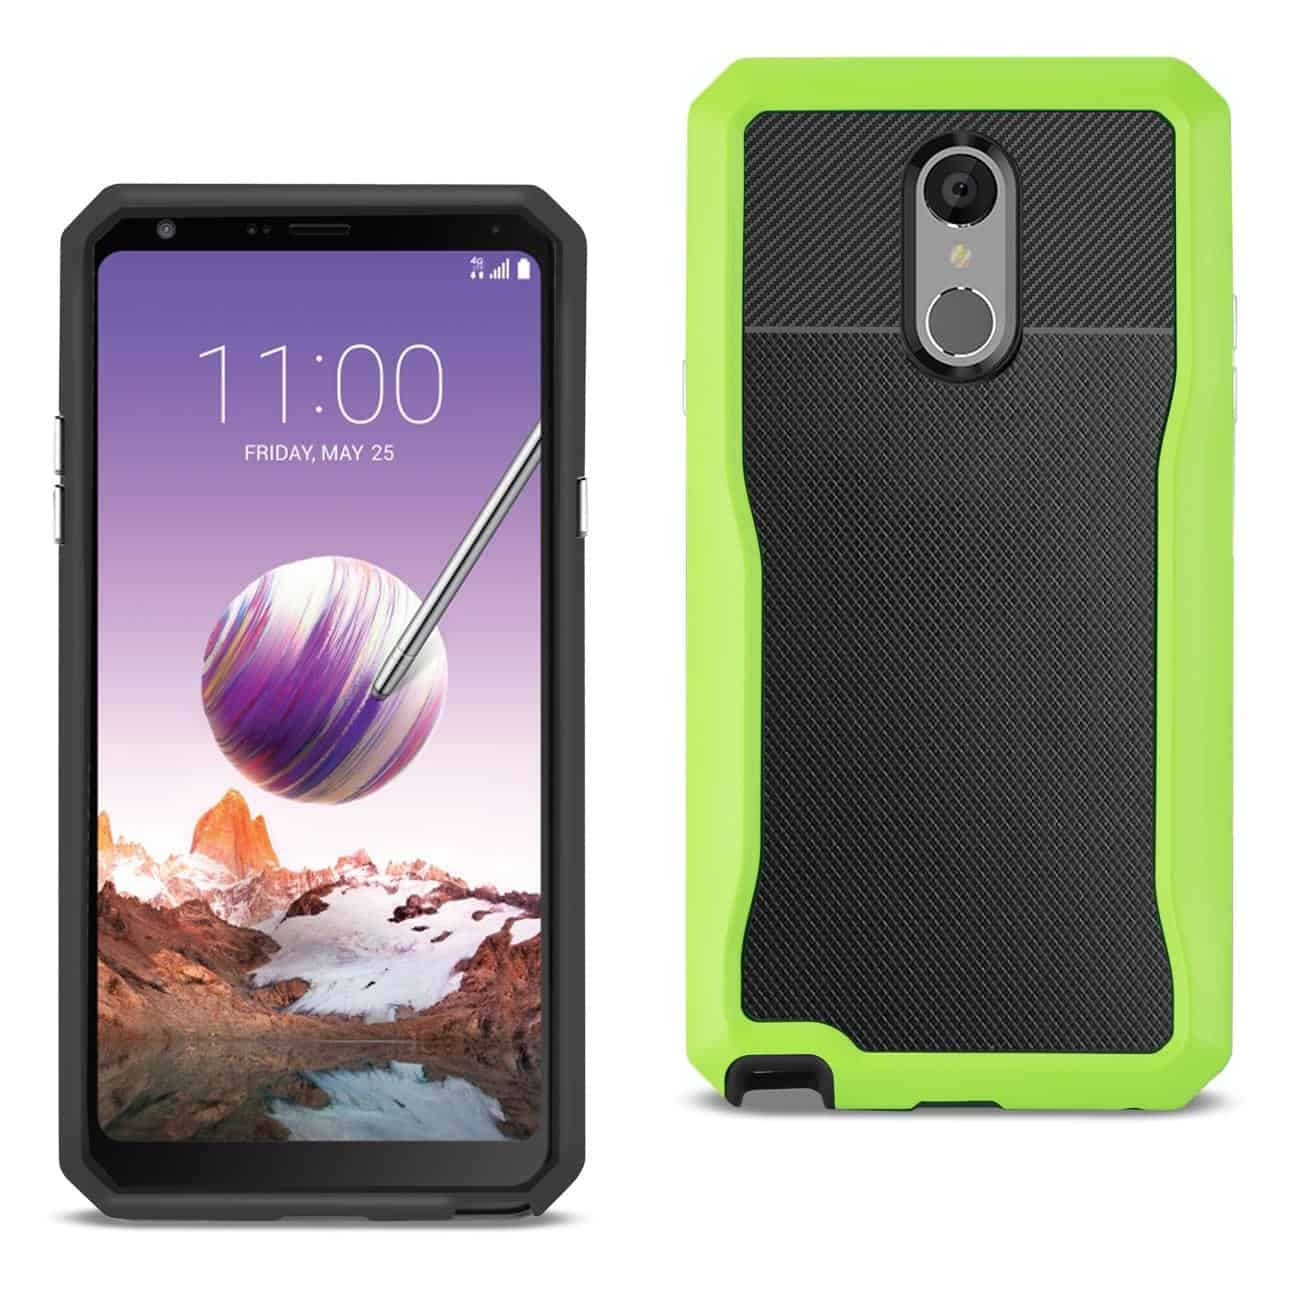 LG STYLO 4 Full Coverage Shockproof Case In Green